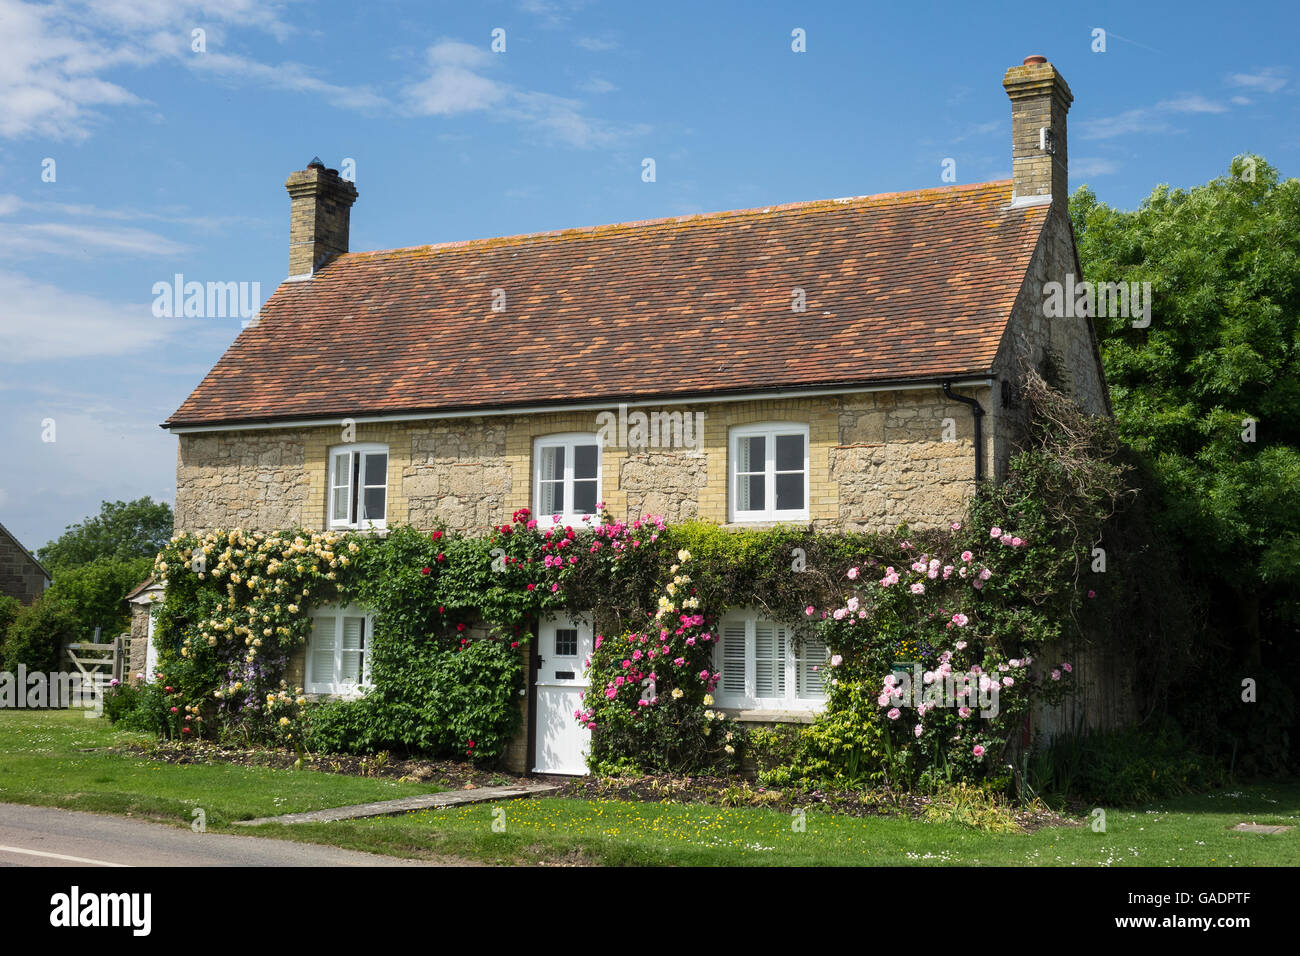 England, Hampshire, Isle of Wight, Newtown, cottage - Stock Image